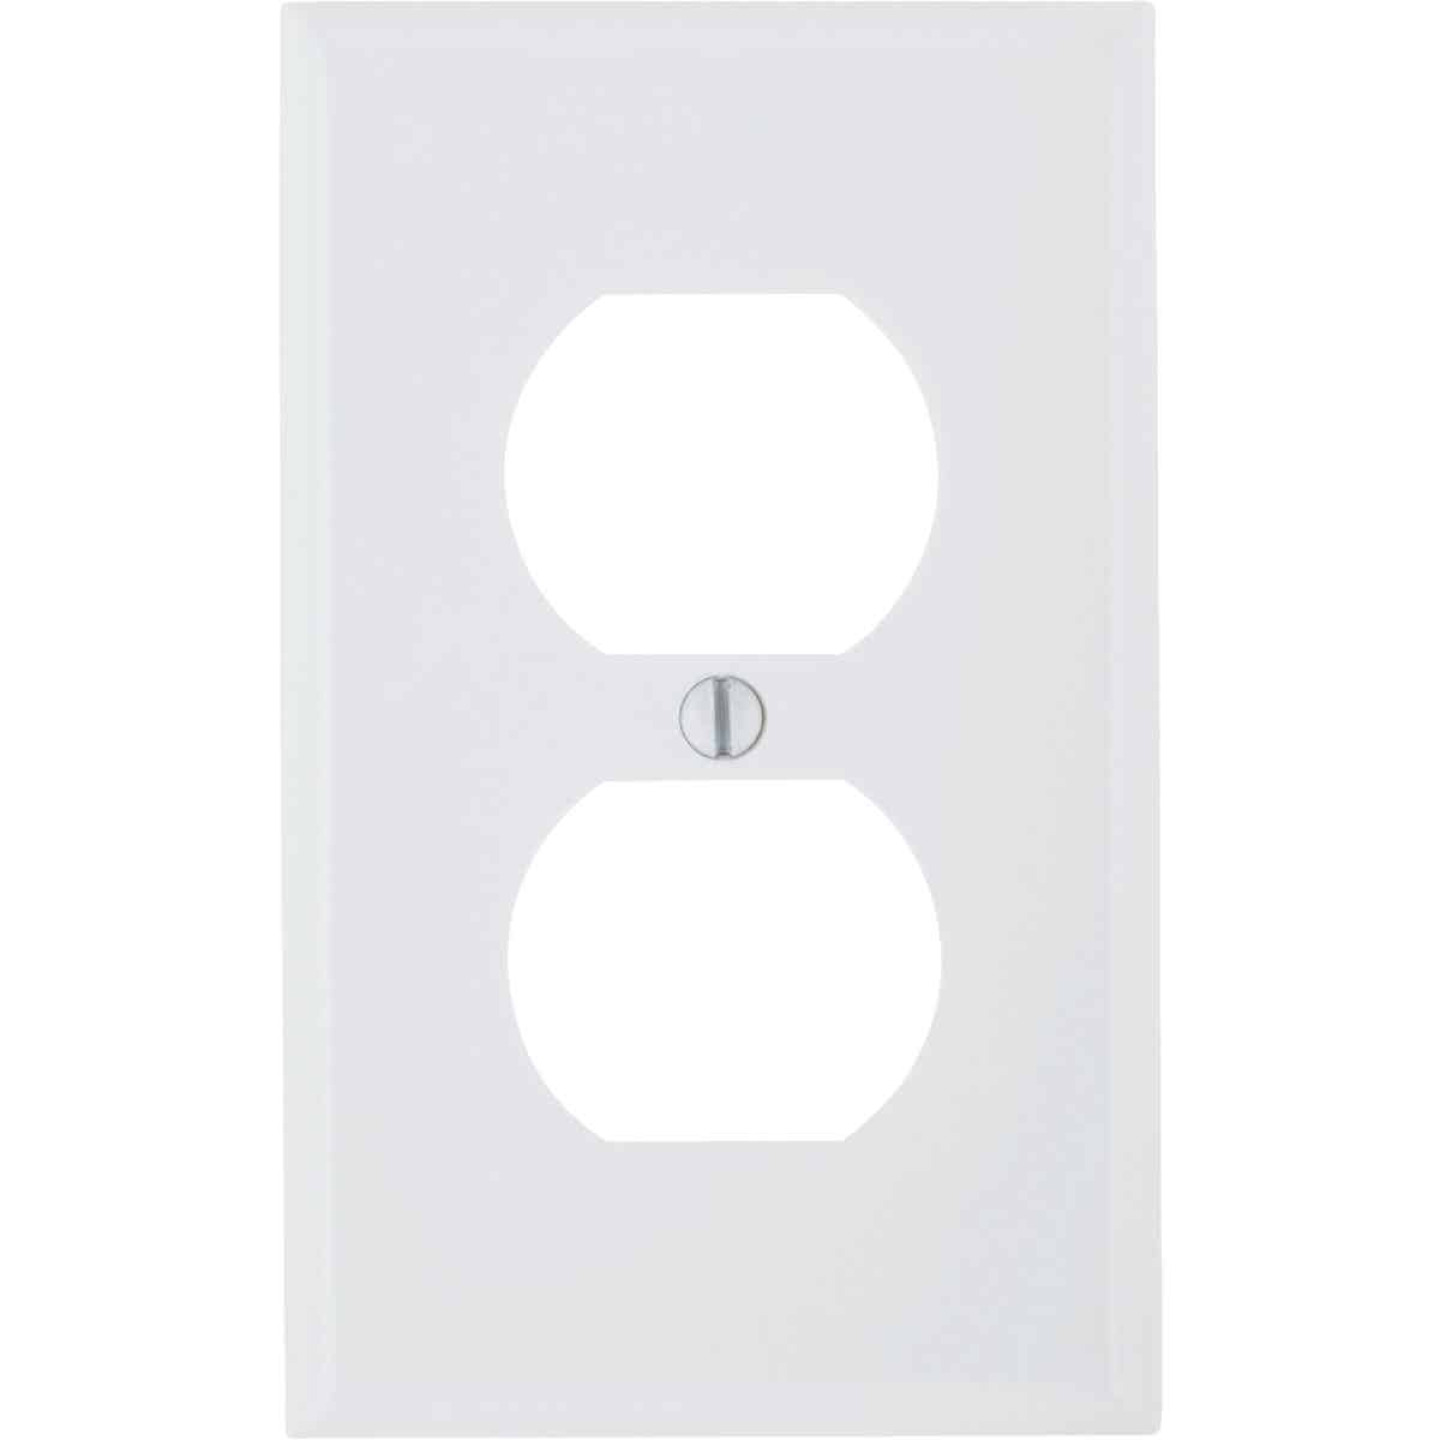 Leviton Commercial Grade 1-Gang Thermoplastic Outlet Wall Plate, White Image 1